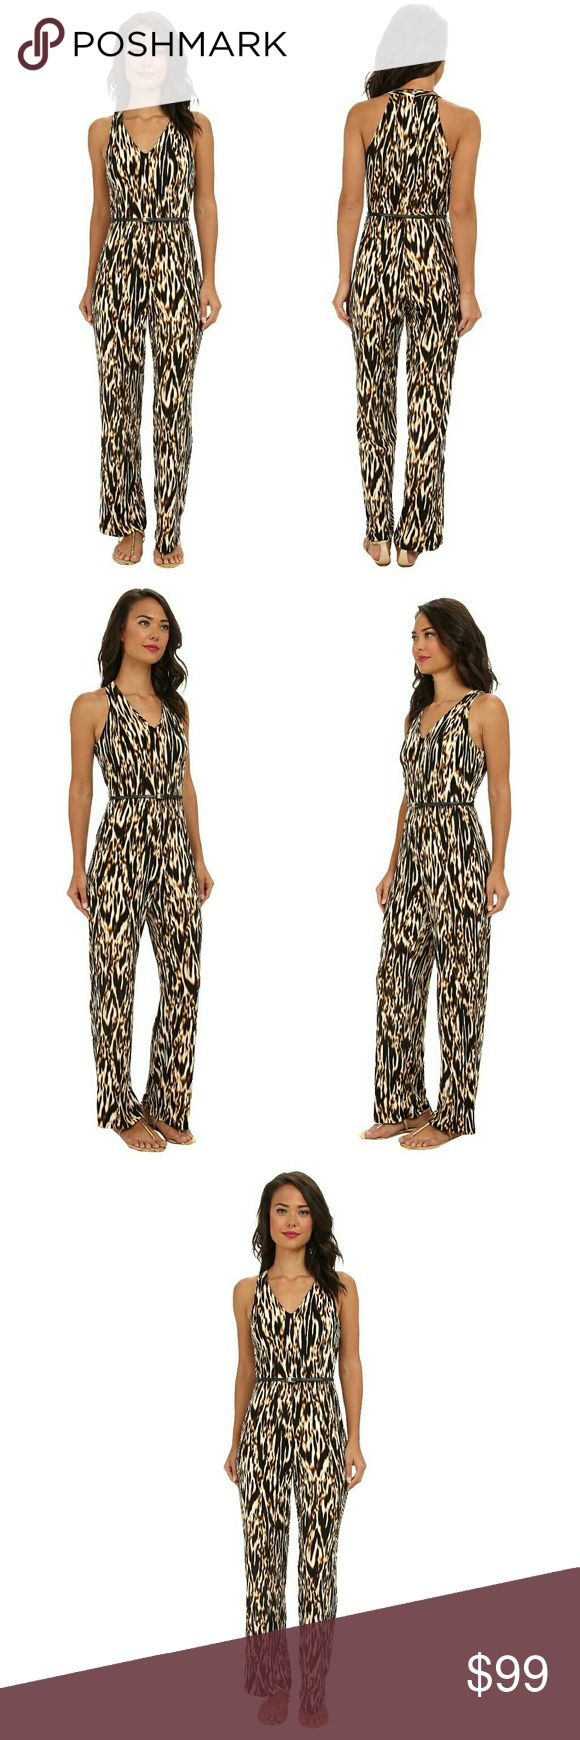 New! Calvin Klein Belted Animal Print Jumpsuit Stand out in Calvin Klein's stunning jumpsuit, complete with a bold animal print and undeniably flattering fit. The skinny belt cinches in your shape.     Removable buckled skinny belt  Allover animal print  V-neckline. Sleeveless with cutaway arm openings  Elasticized waist. Relaxed fit  Back zip with hook-and-eye closure  Inseam, about 32 inches  Polyester/spandex  Dry clean  Retails for $128 Calvin Klein Pants Jumpsuits & Rompers